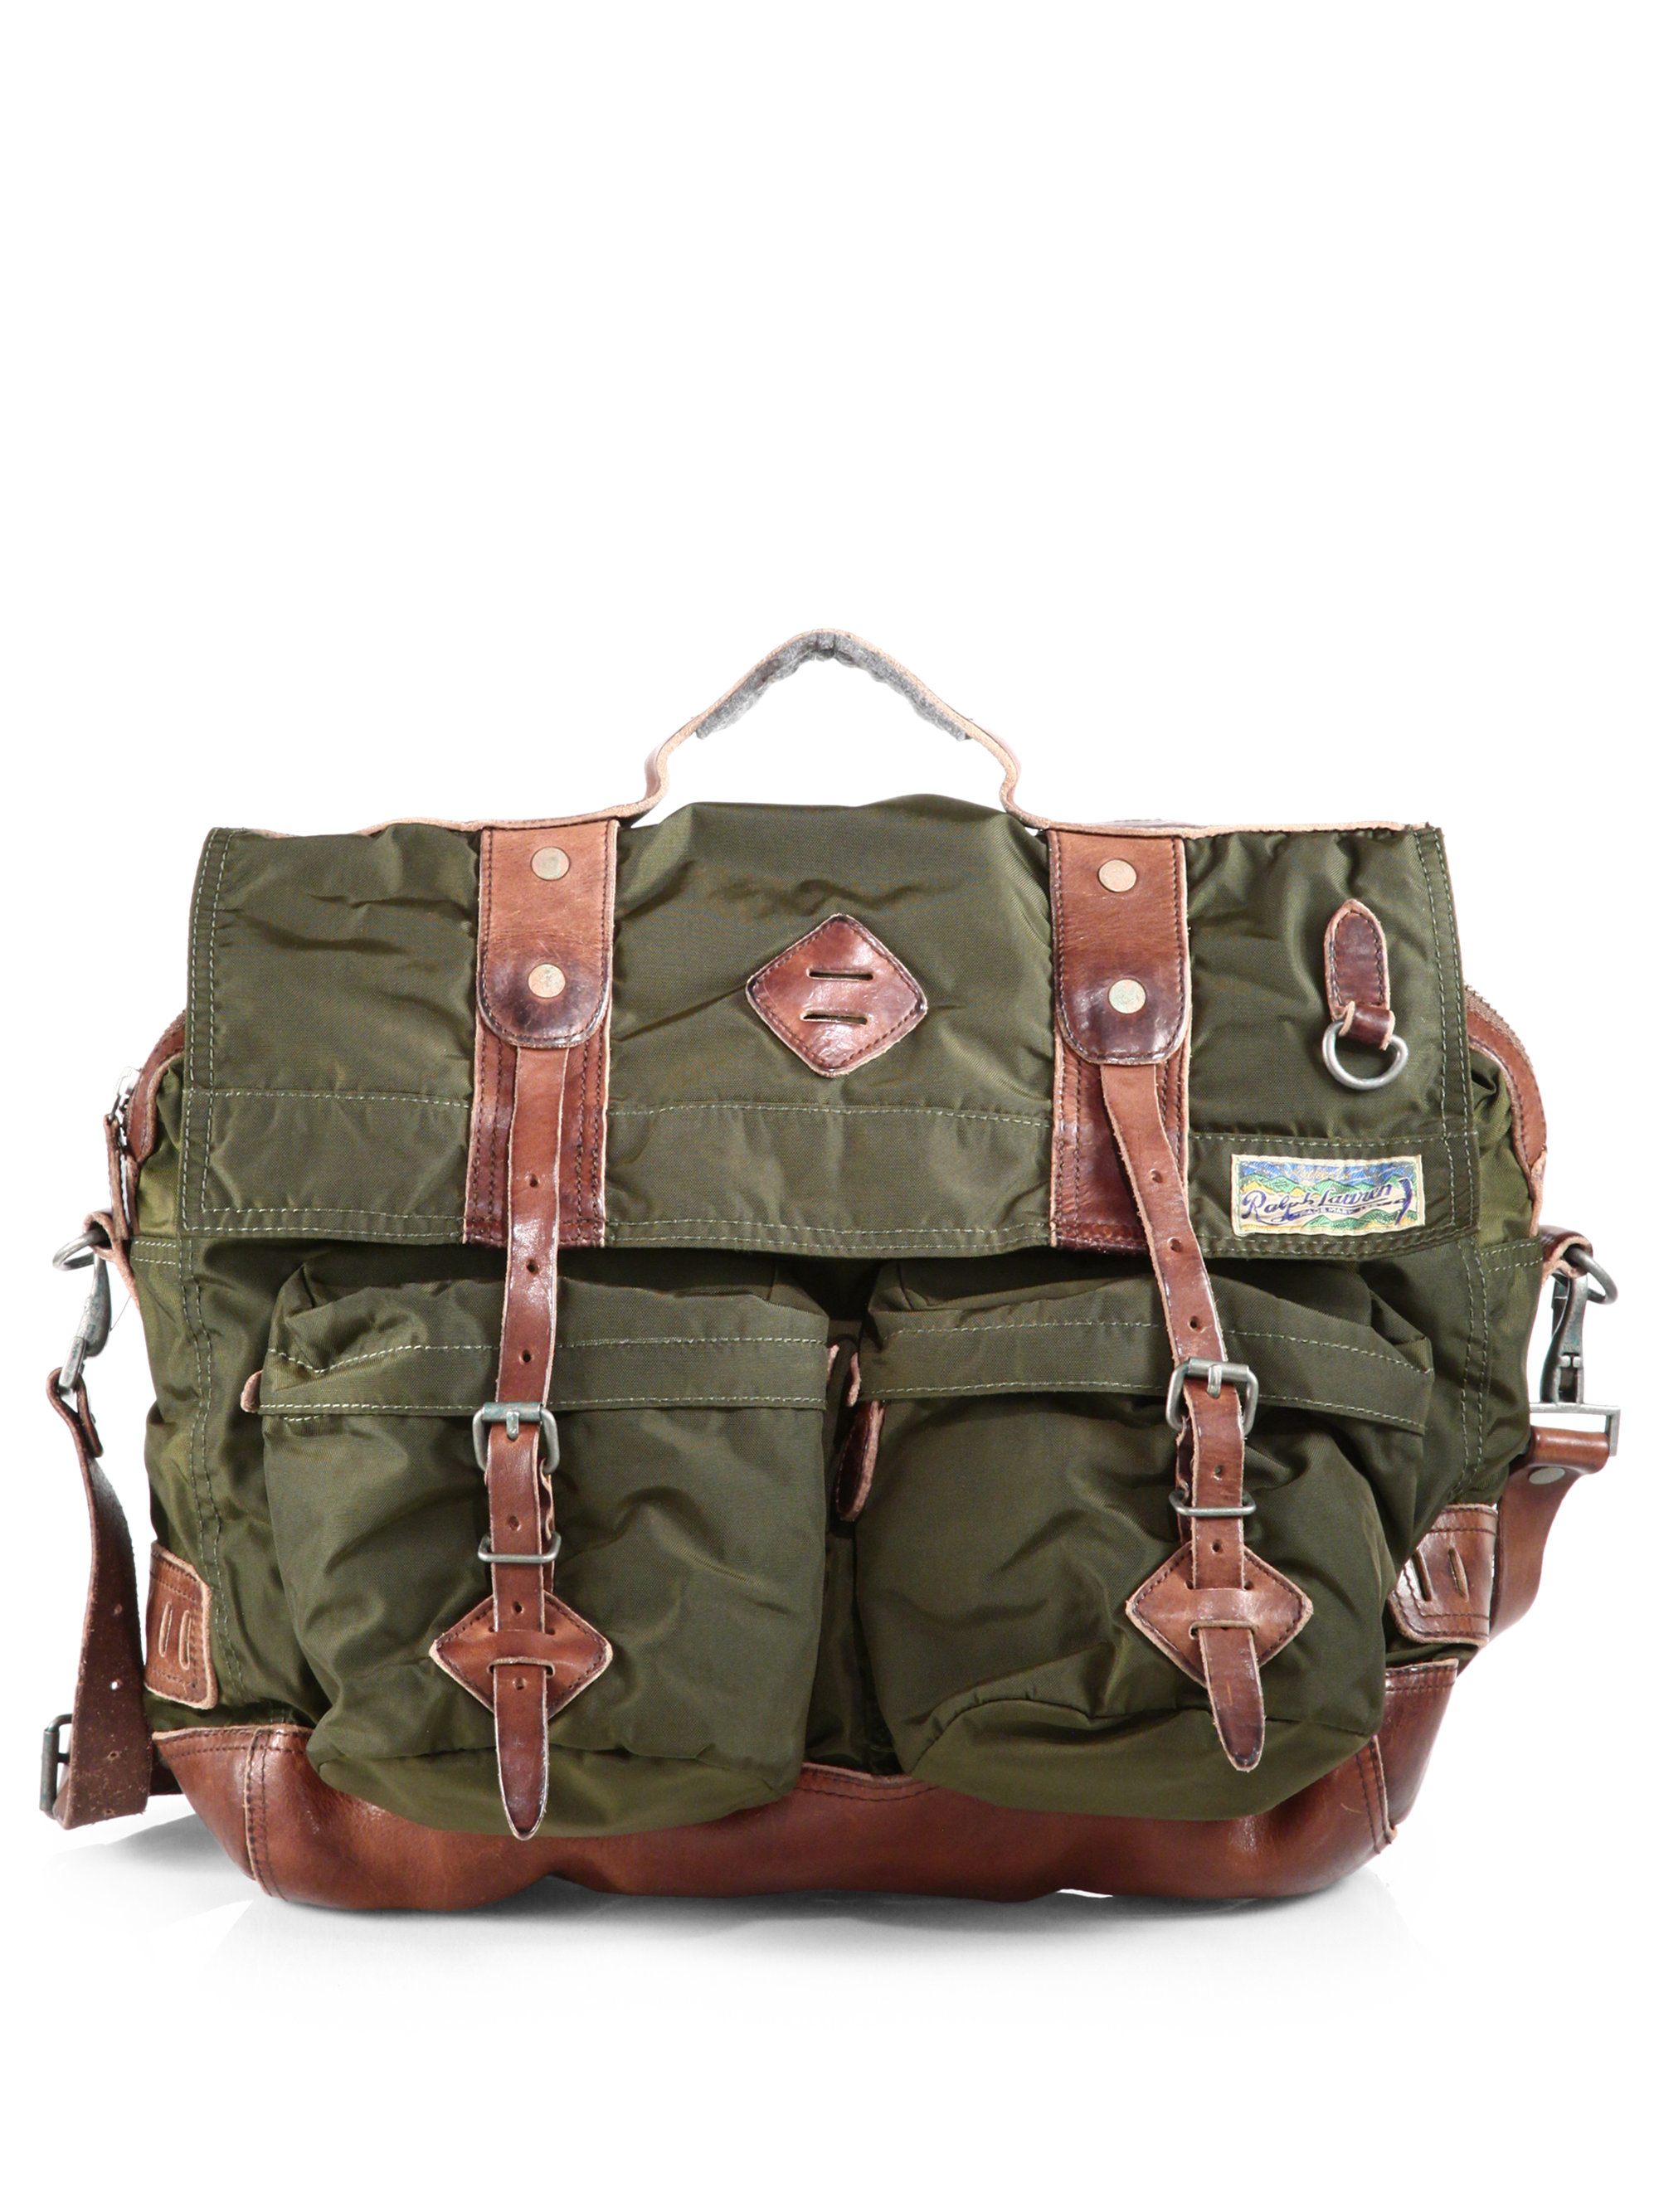 ... discount code for lyst polo ralph lauren yosemite messenger in green  for men 6d1f4 2a40b aacc10bcc6518